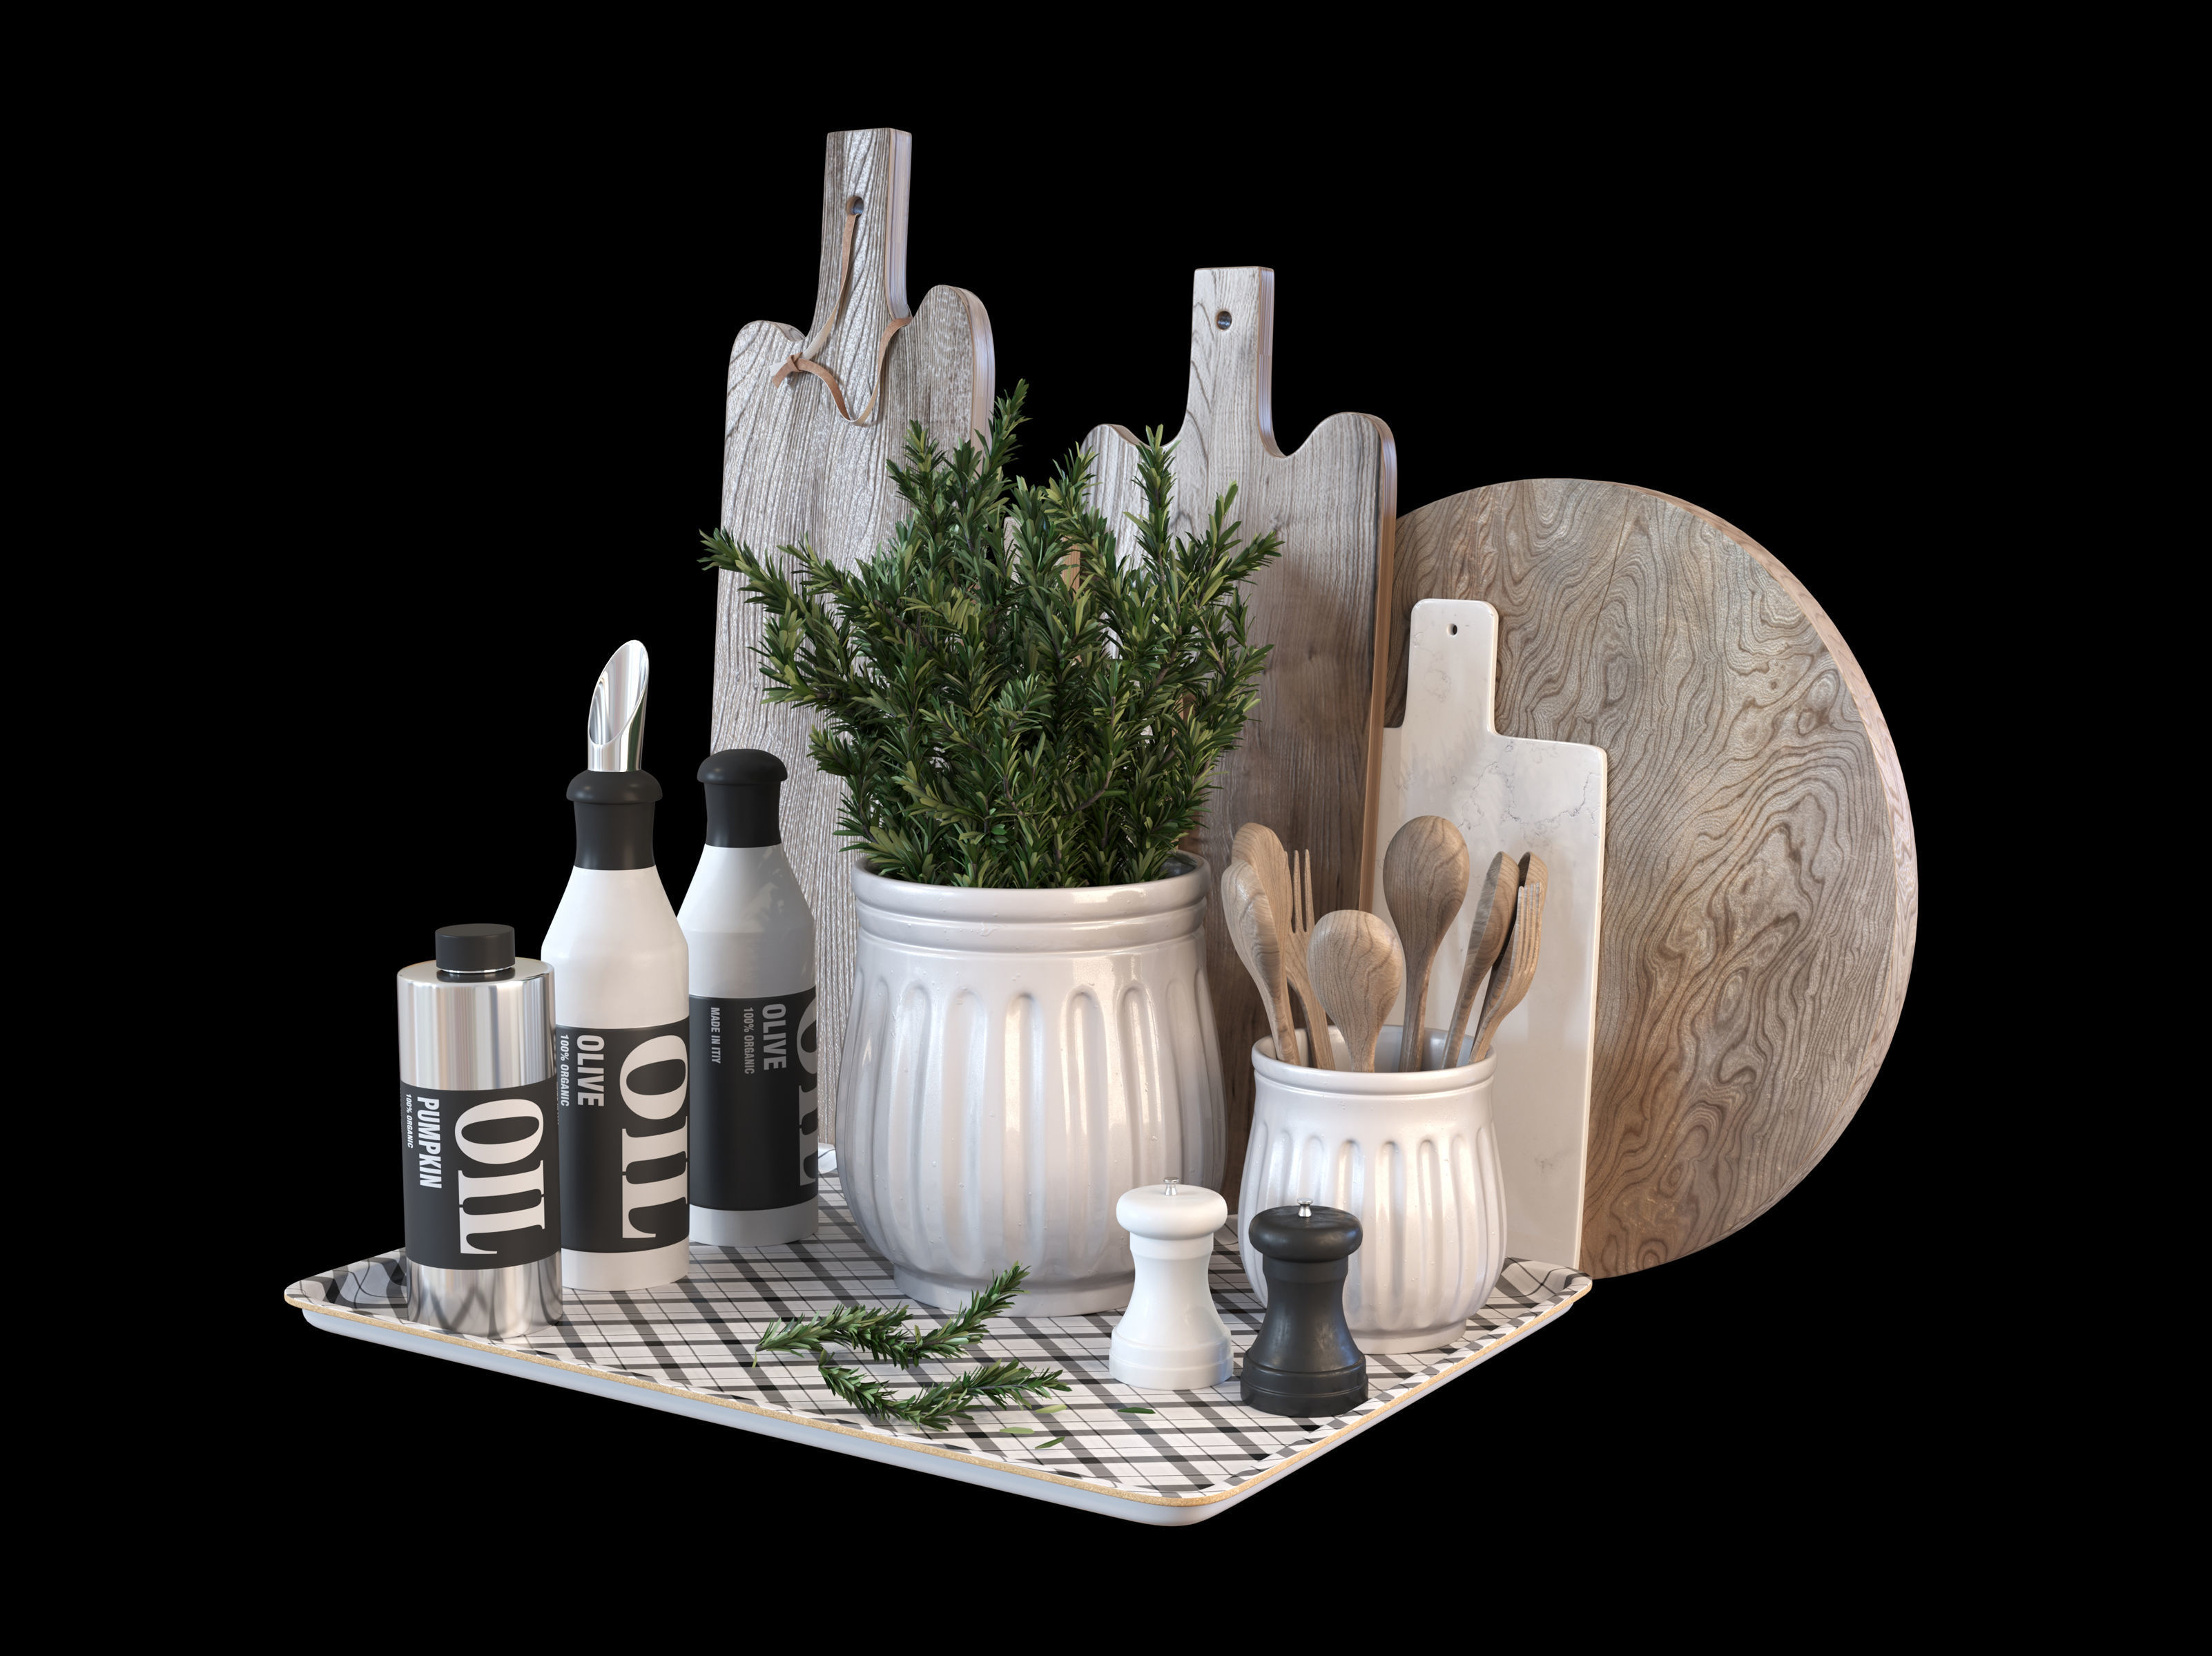 Kitchen decoration set with rosemary and cutting boards